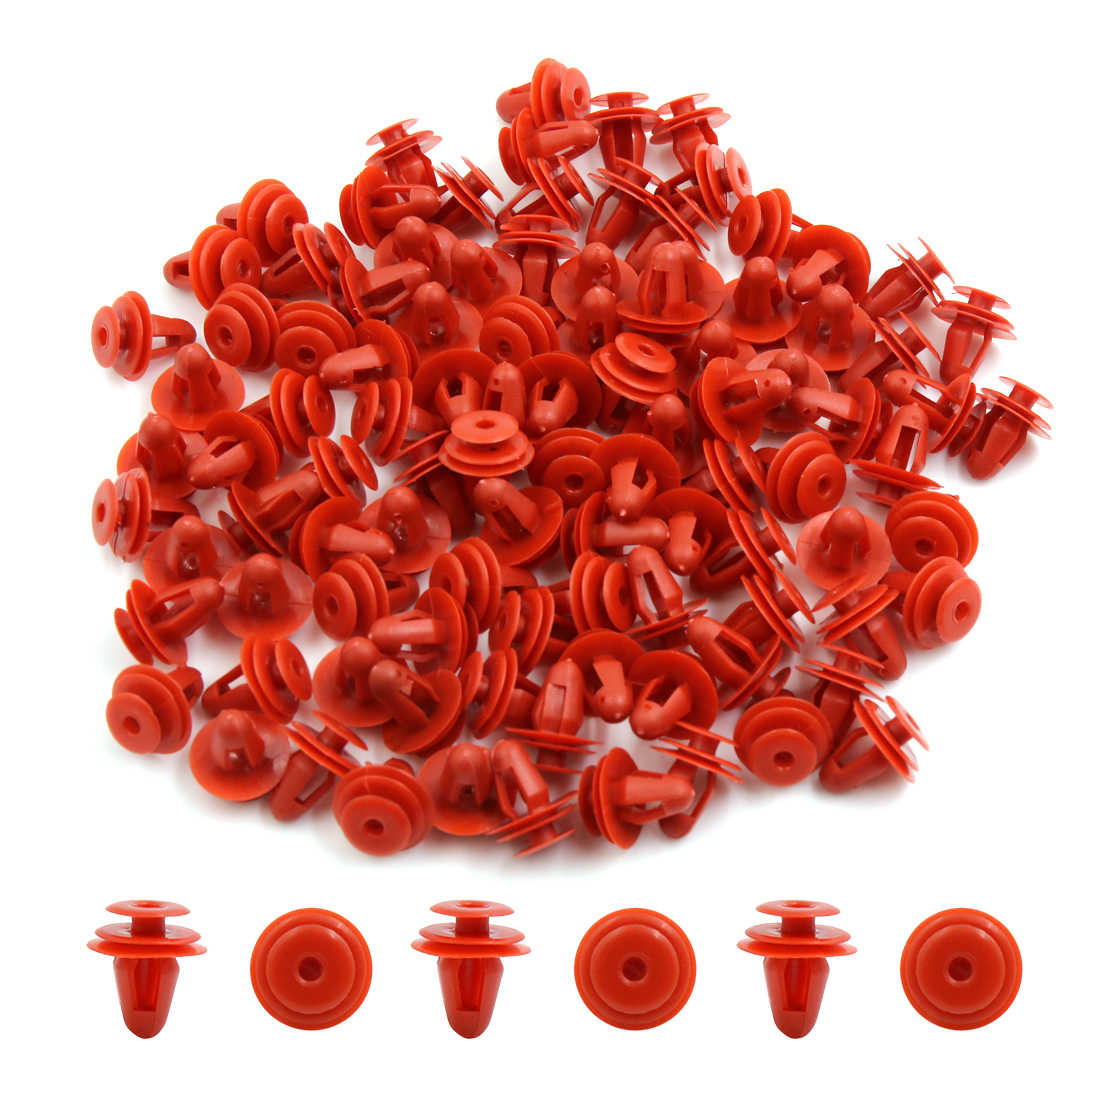 100Pcs Red Plastic Car Screw Rivet Fender Bumper Hood Retainer Clips 9mm Hole